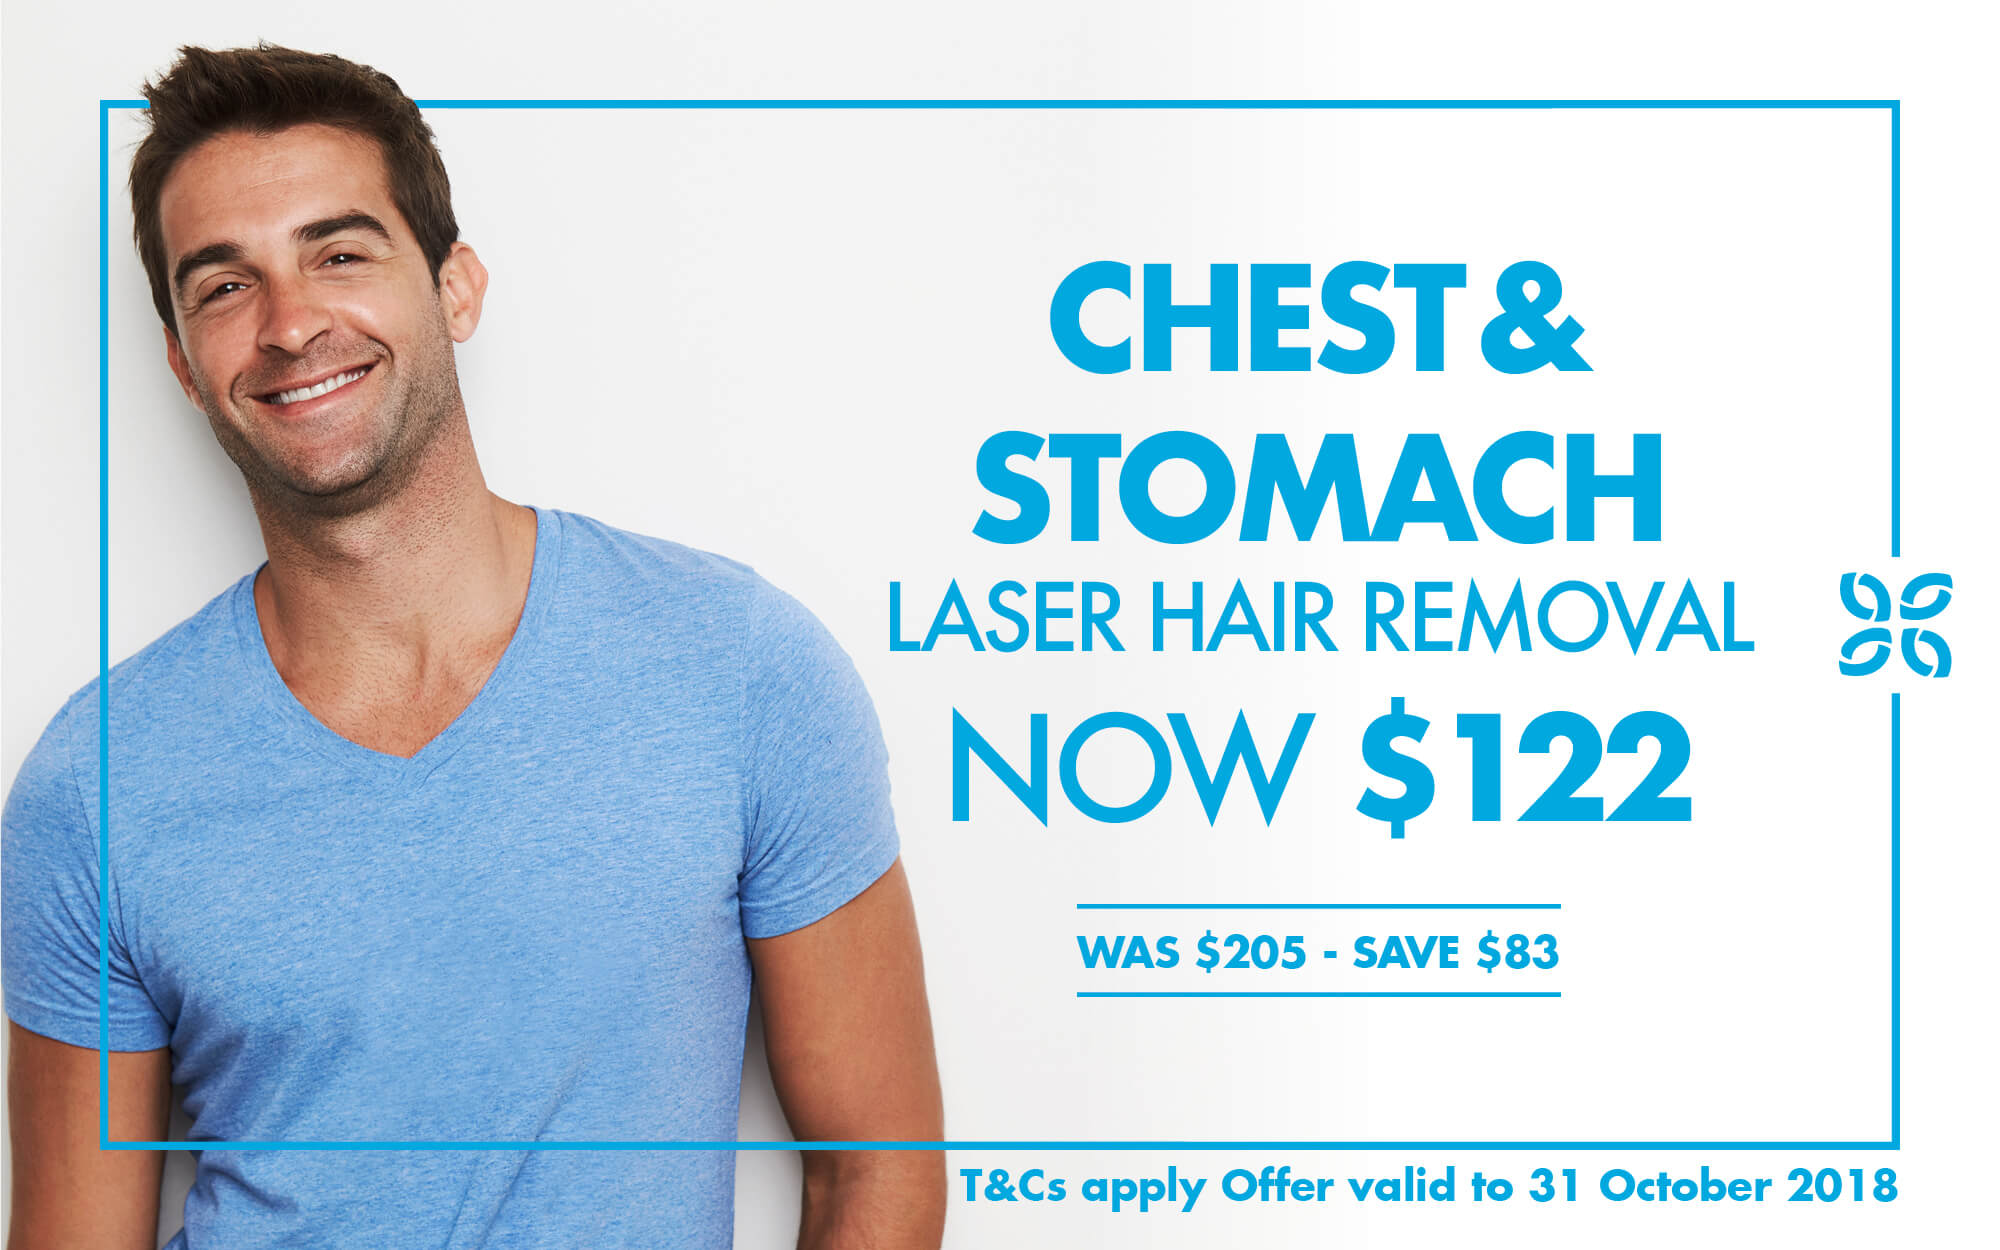 LASER CHEST AND STOMACH MOBILE